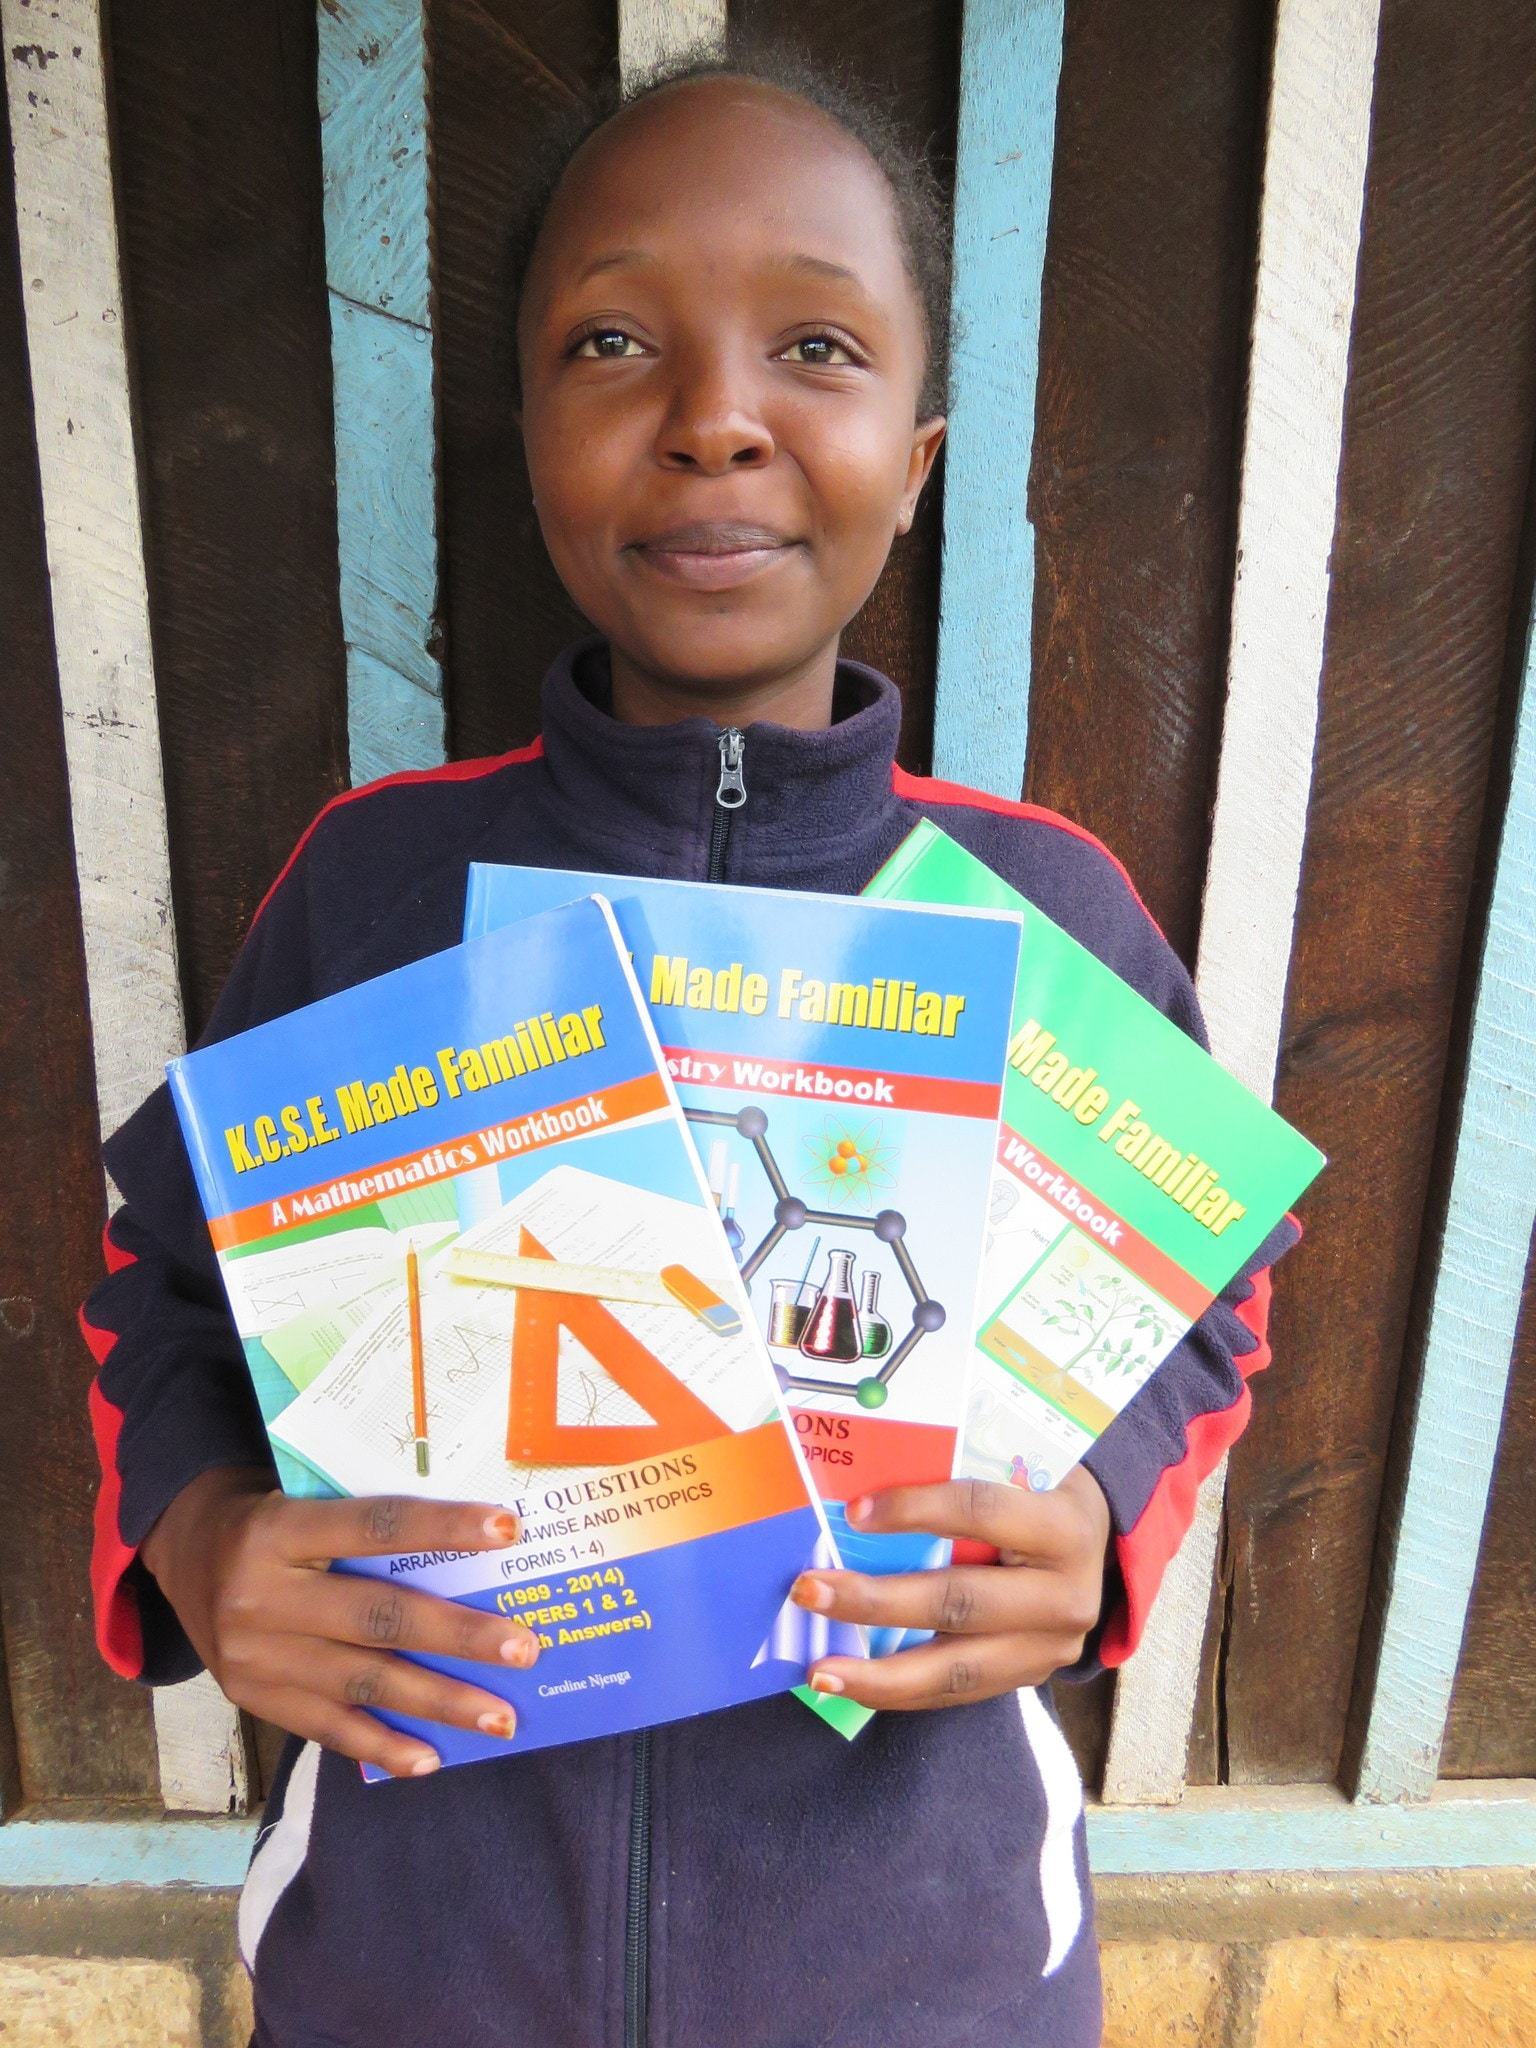 In addition to her sponsor gifts, Linet receives 3 revision books she requested to aid her in her studies.